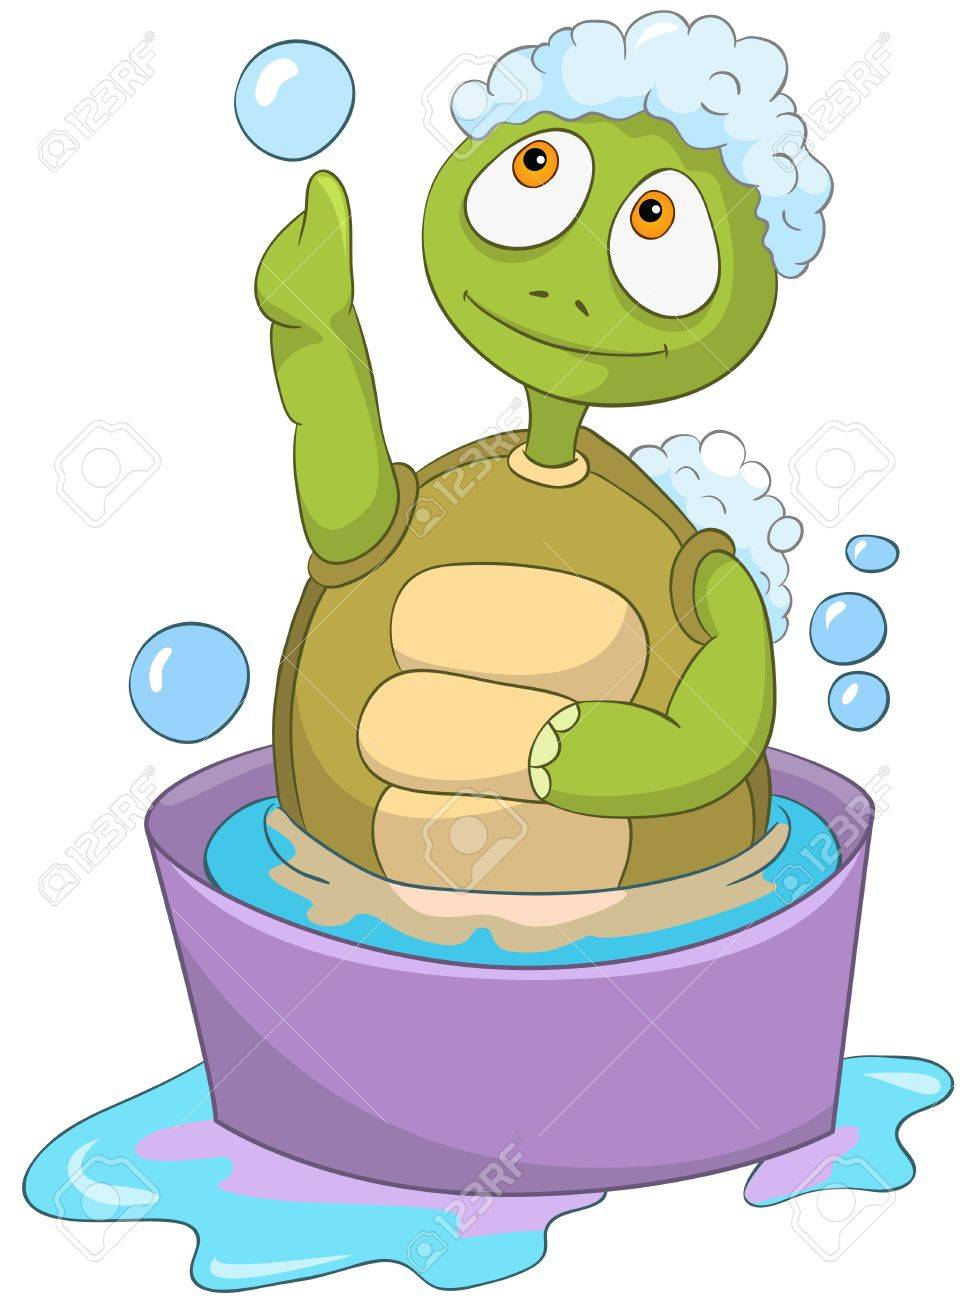 Cartoon Character Funny Turtle Isolated on White Background. Baby Washing. Stock Vector - 14455923